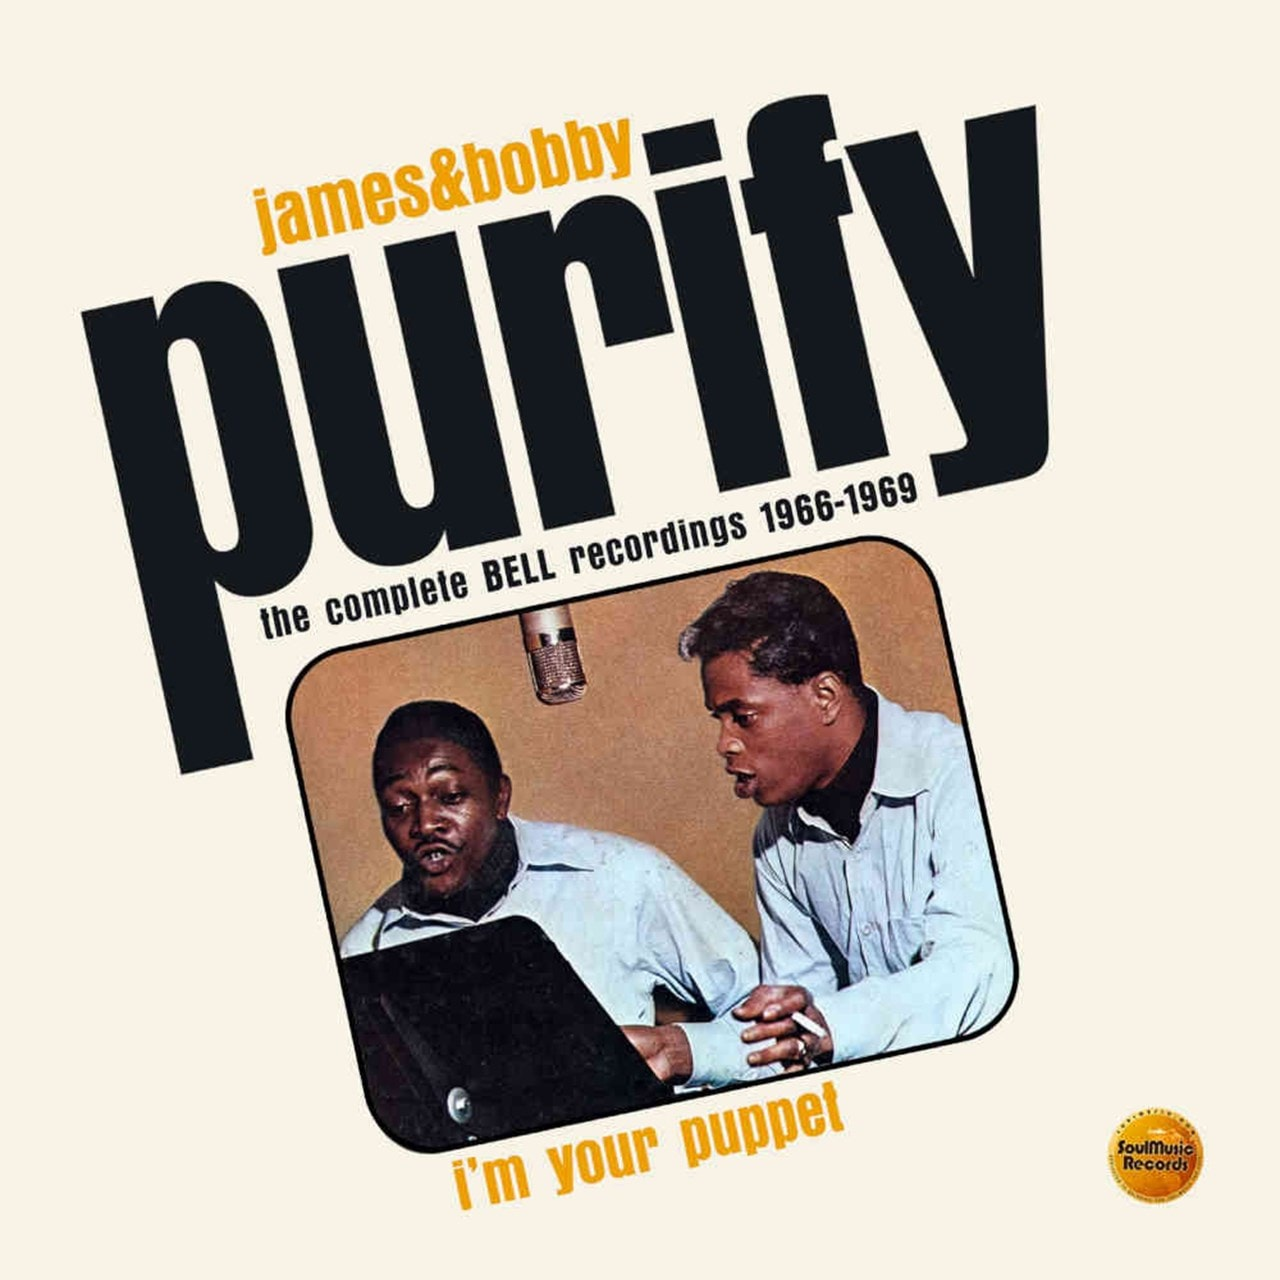 I'm Your Puppet: The Complete Bell Recordings 1966-1969 - 1